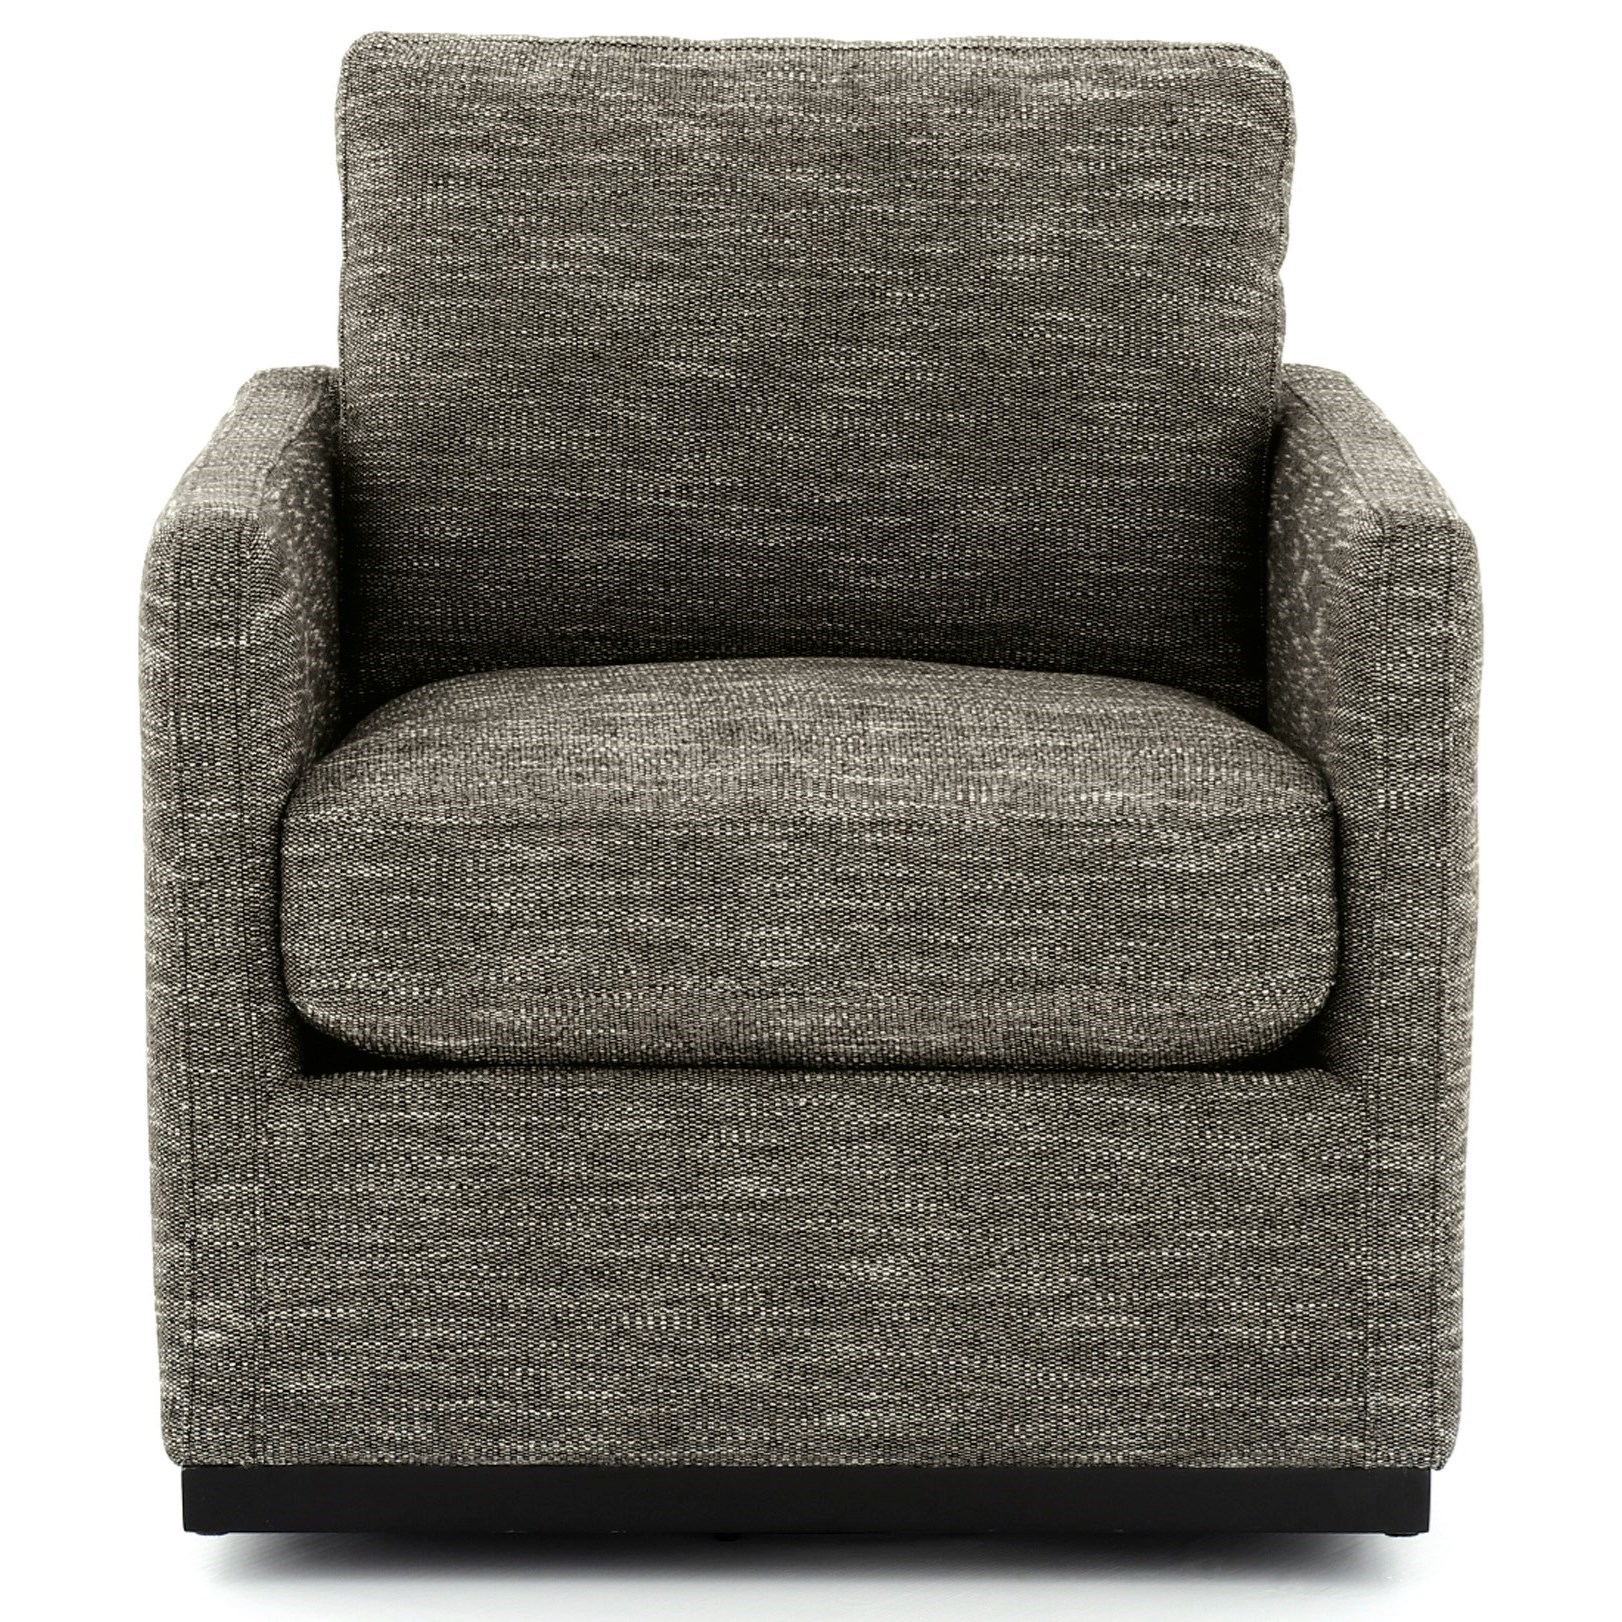 Grona Swivel Accent Chair by Signature Design by Ashley at Household Furniture